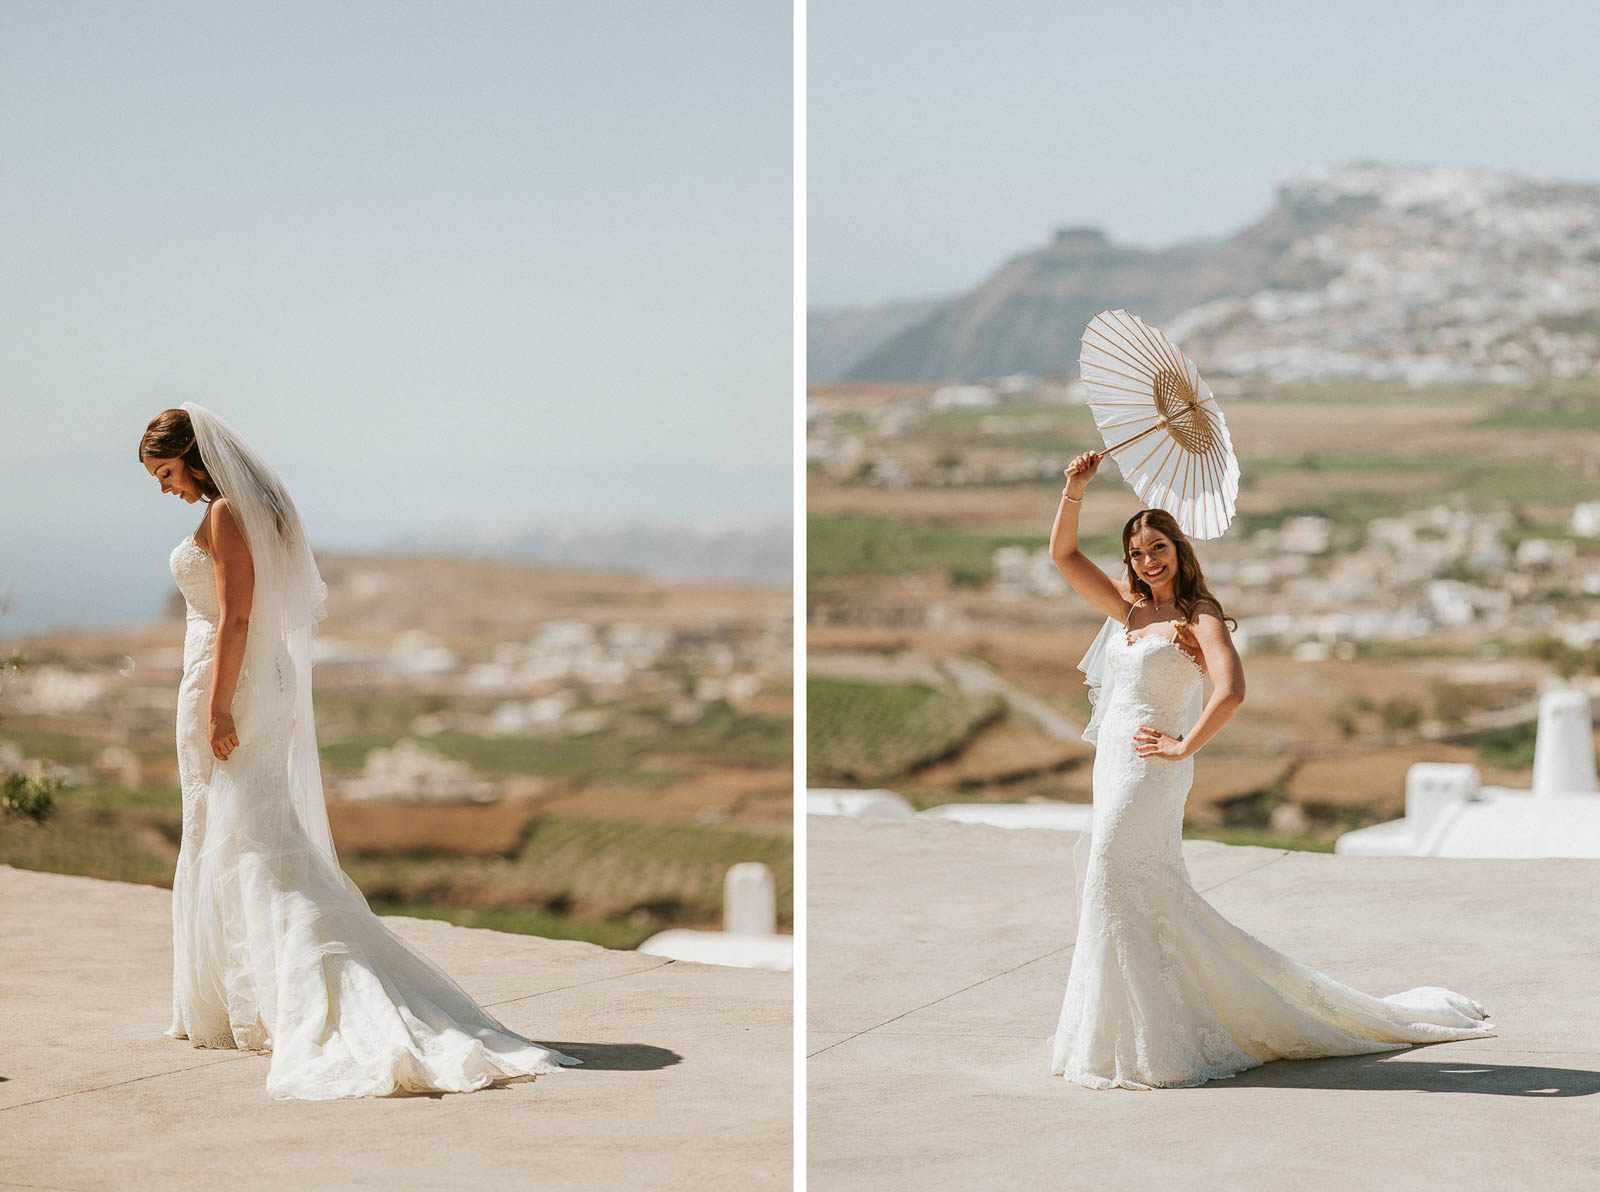 Santorini-Wedding-Photographer-Greece-Destination-Weddings-Mait-Juriado-M&J-Studios-034